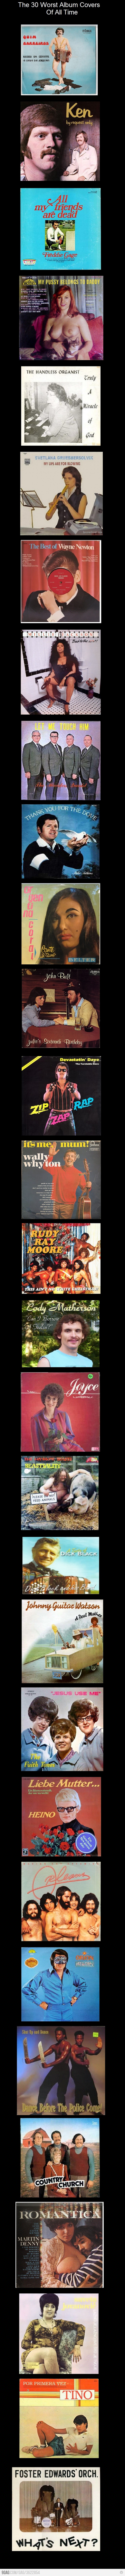 The 30 Worst Album Covers Of All Time Lulz Worst Album Covers